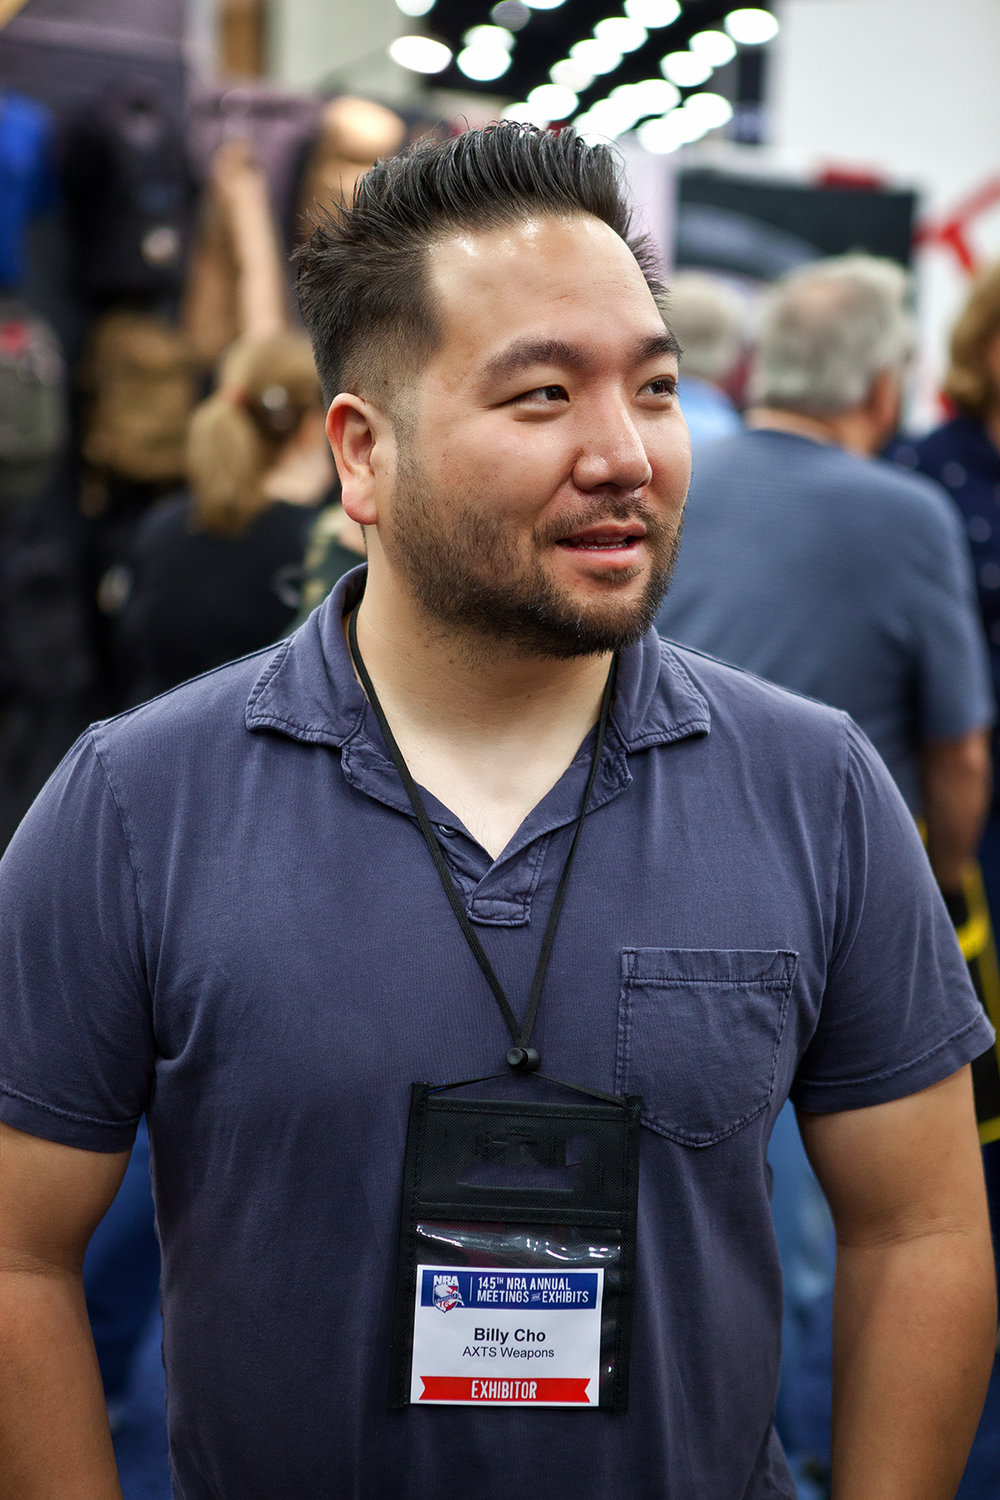 BILLY CHO - WRITER